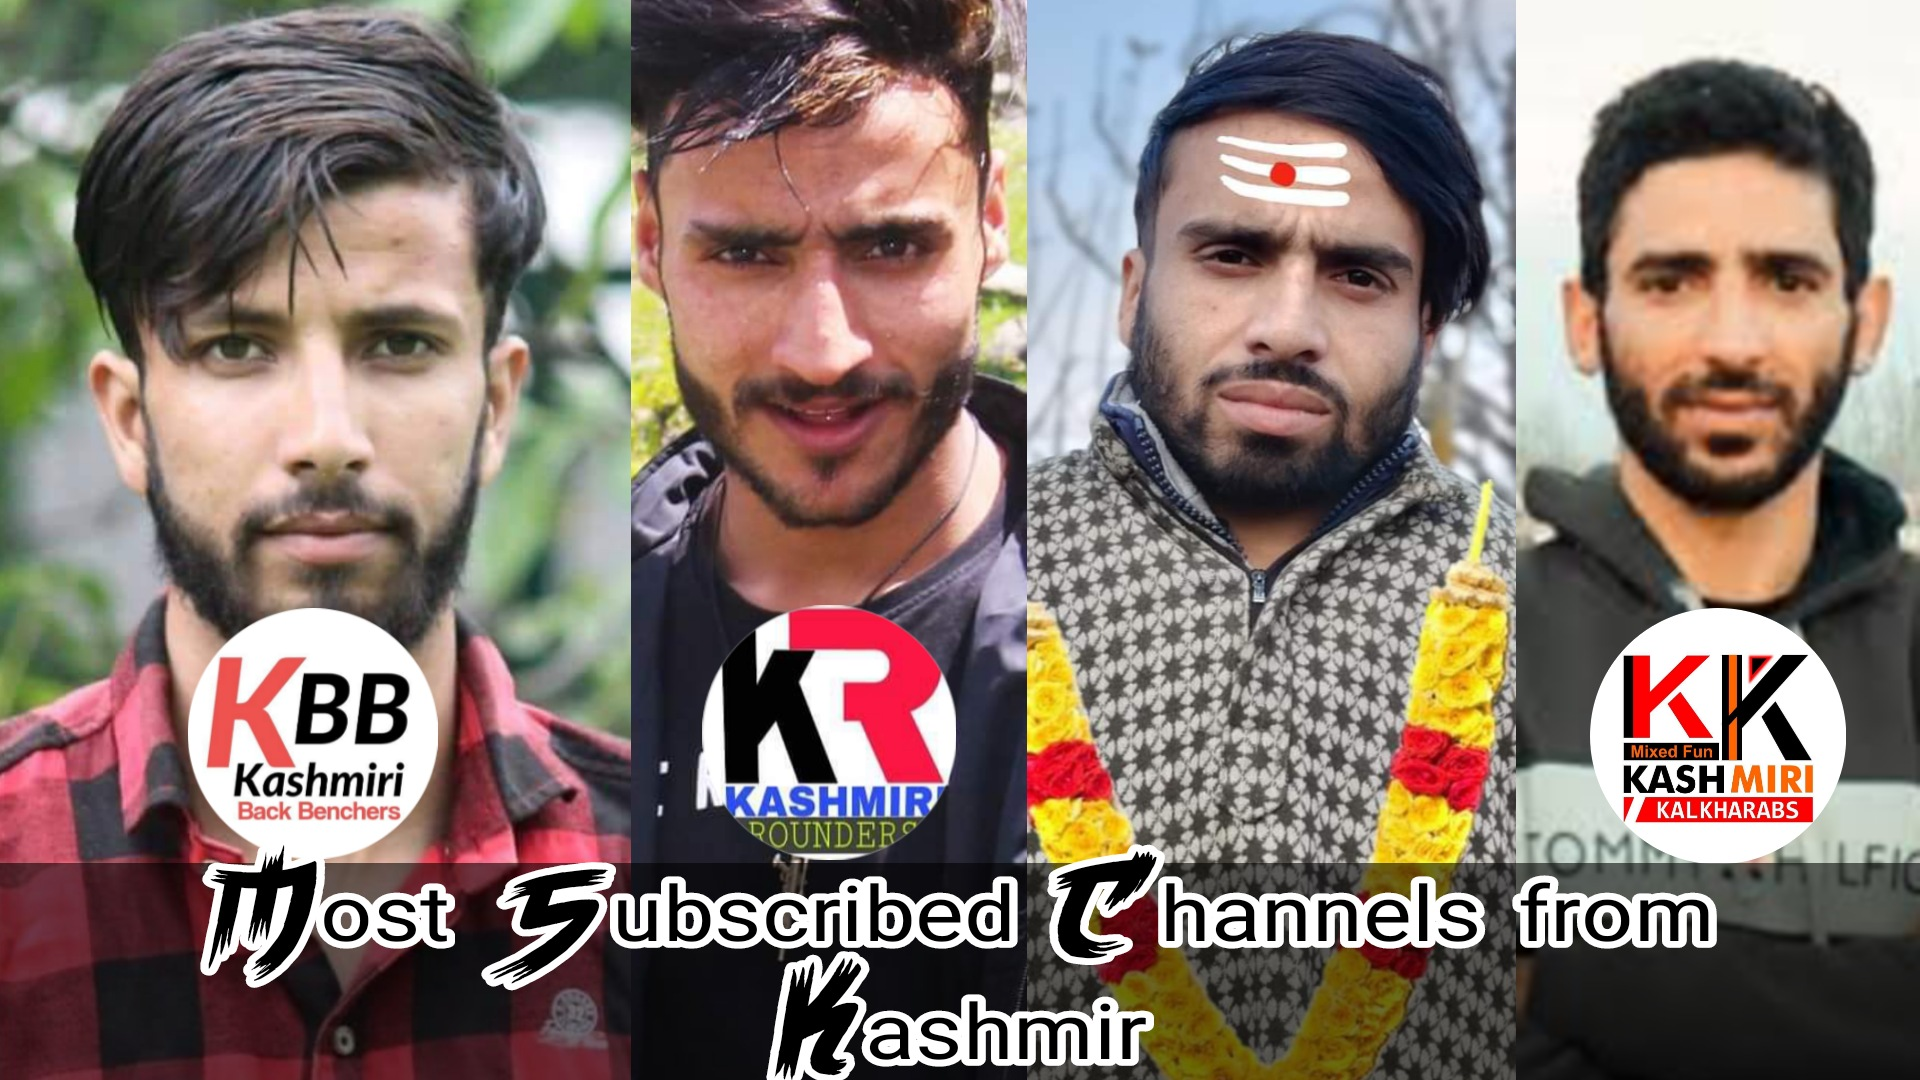 Most Subscribed YouTube Channels of Kashmir